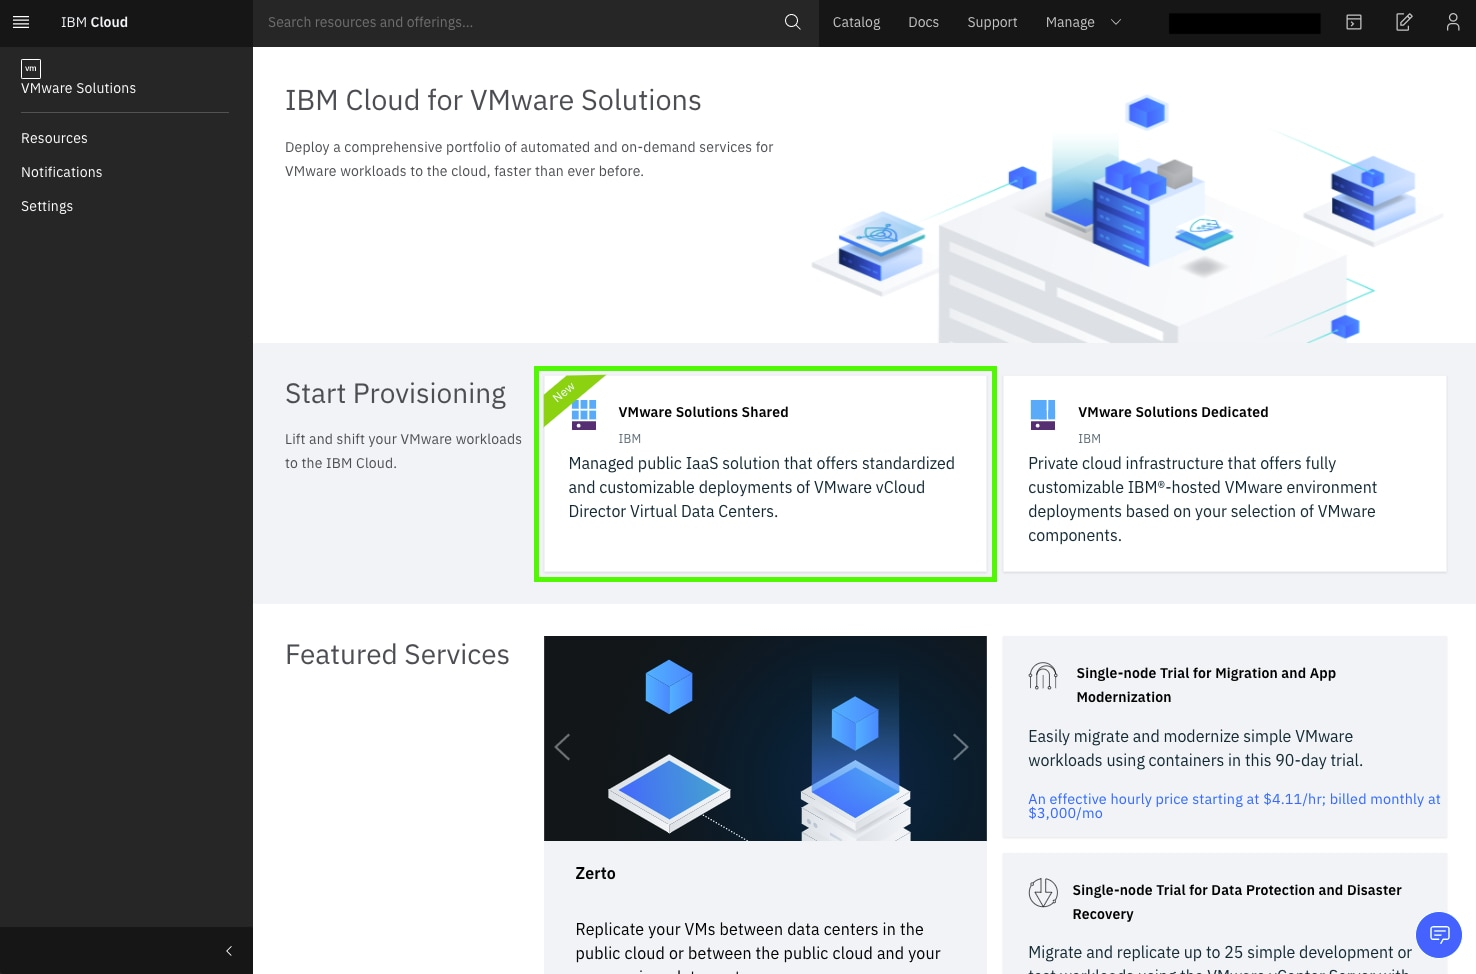 On the VMware page, you will see a variety of options. Choose the VMware Solutions Shared option.